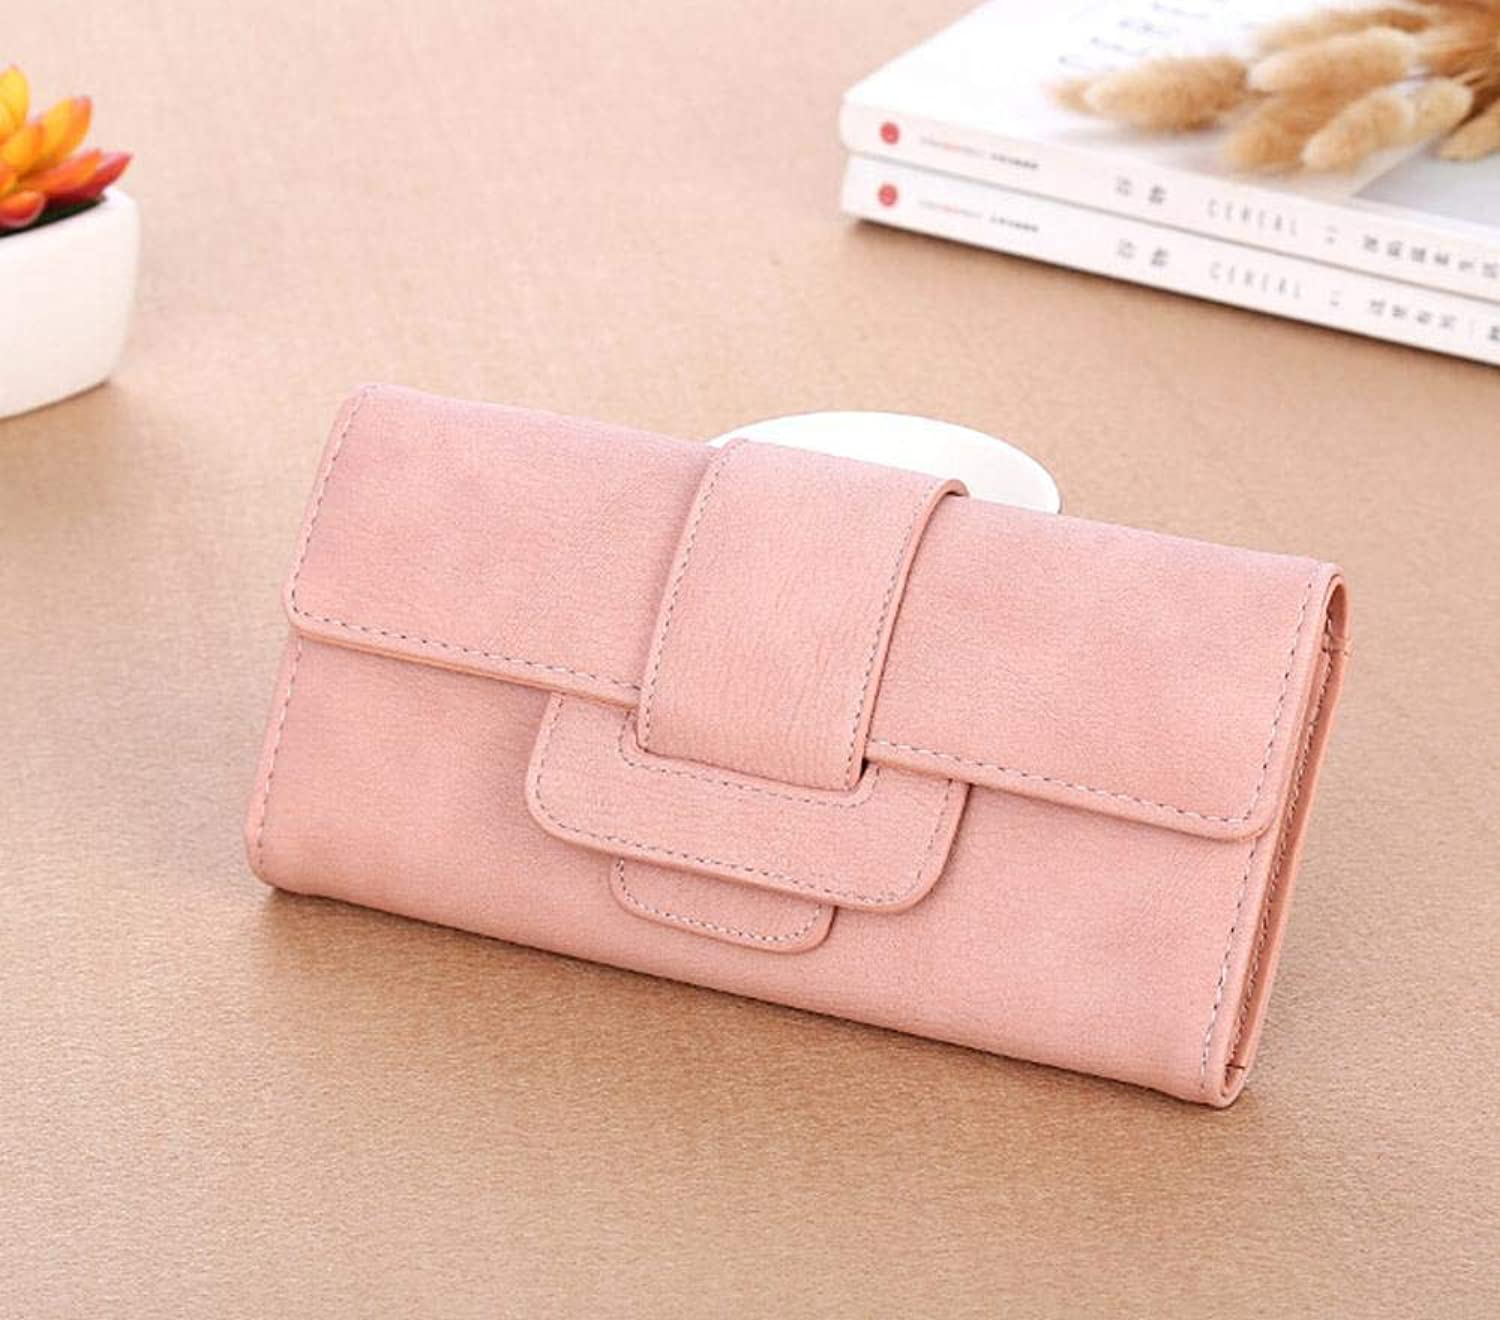 Girls Purse Women's Wallet,Ladies Purse Vintage Lychee Pattern Ladies Long Wallet Large Capacity 19  9.5  3cm (color   C)